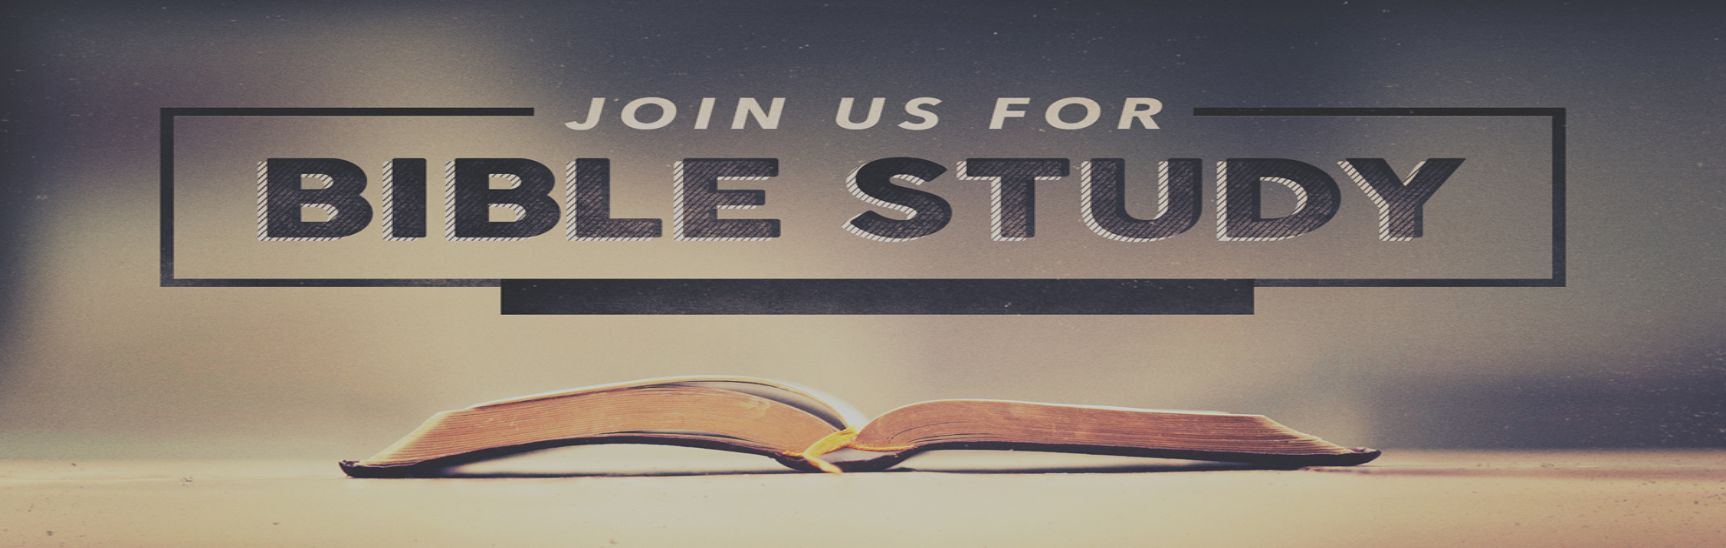 Adult Sunday School  - Sundays @ 11AM in the Chapel - Studying Letters of Paul